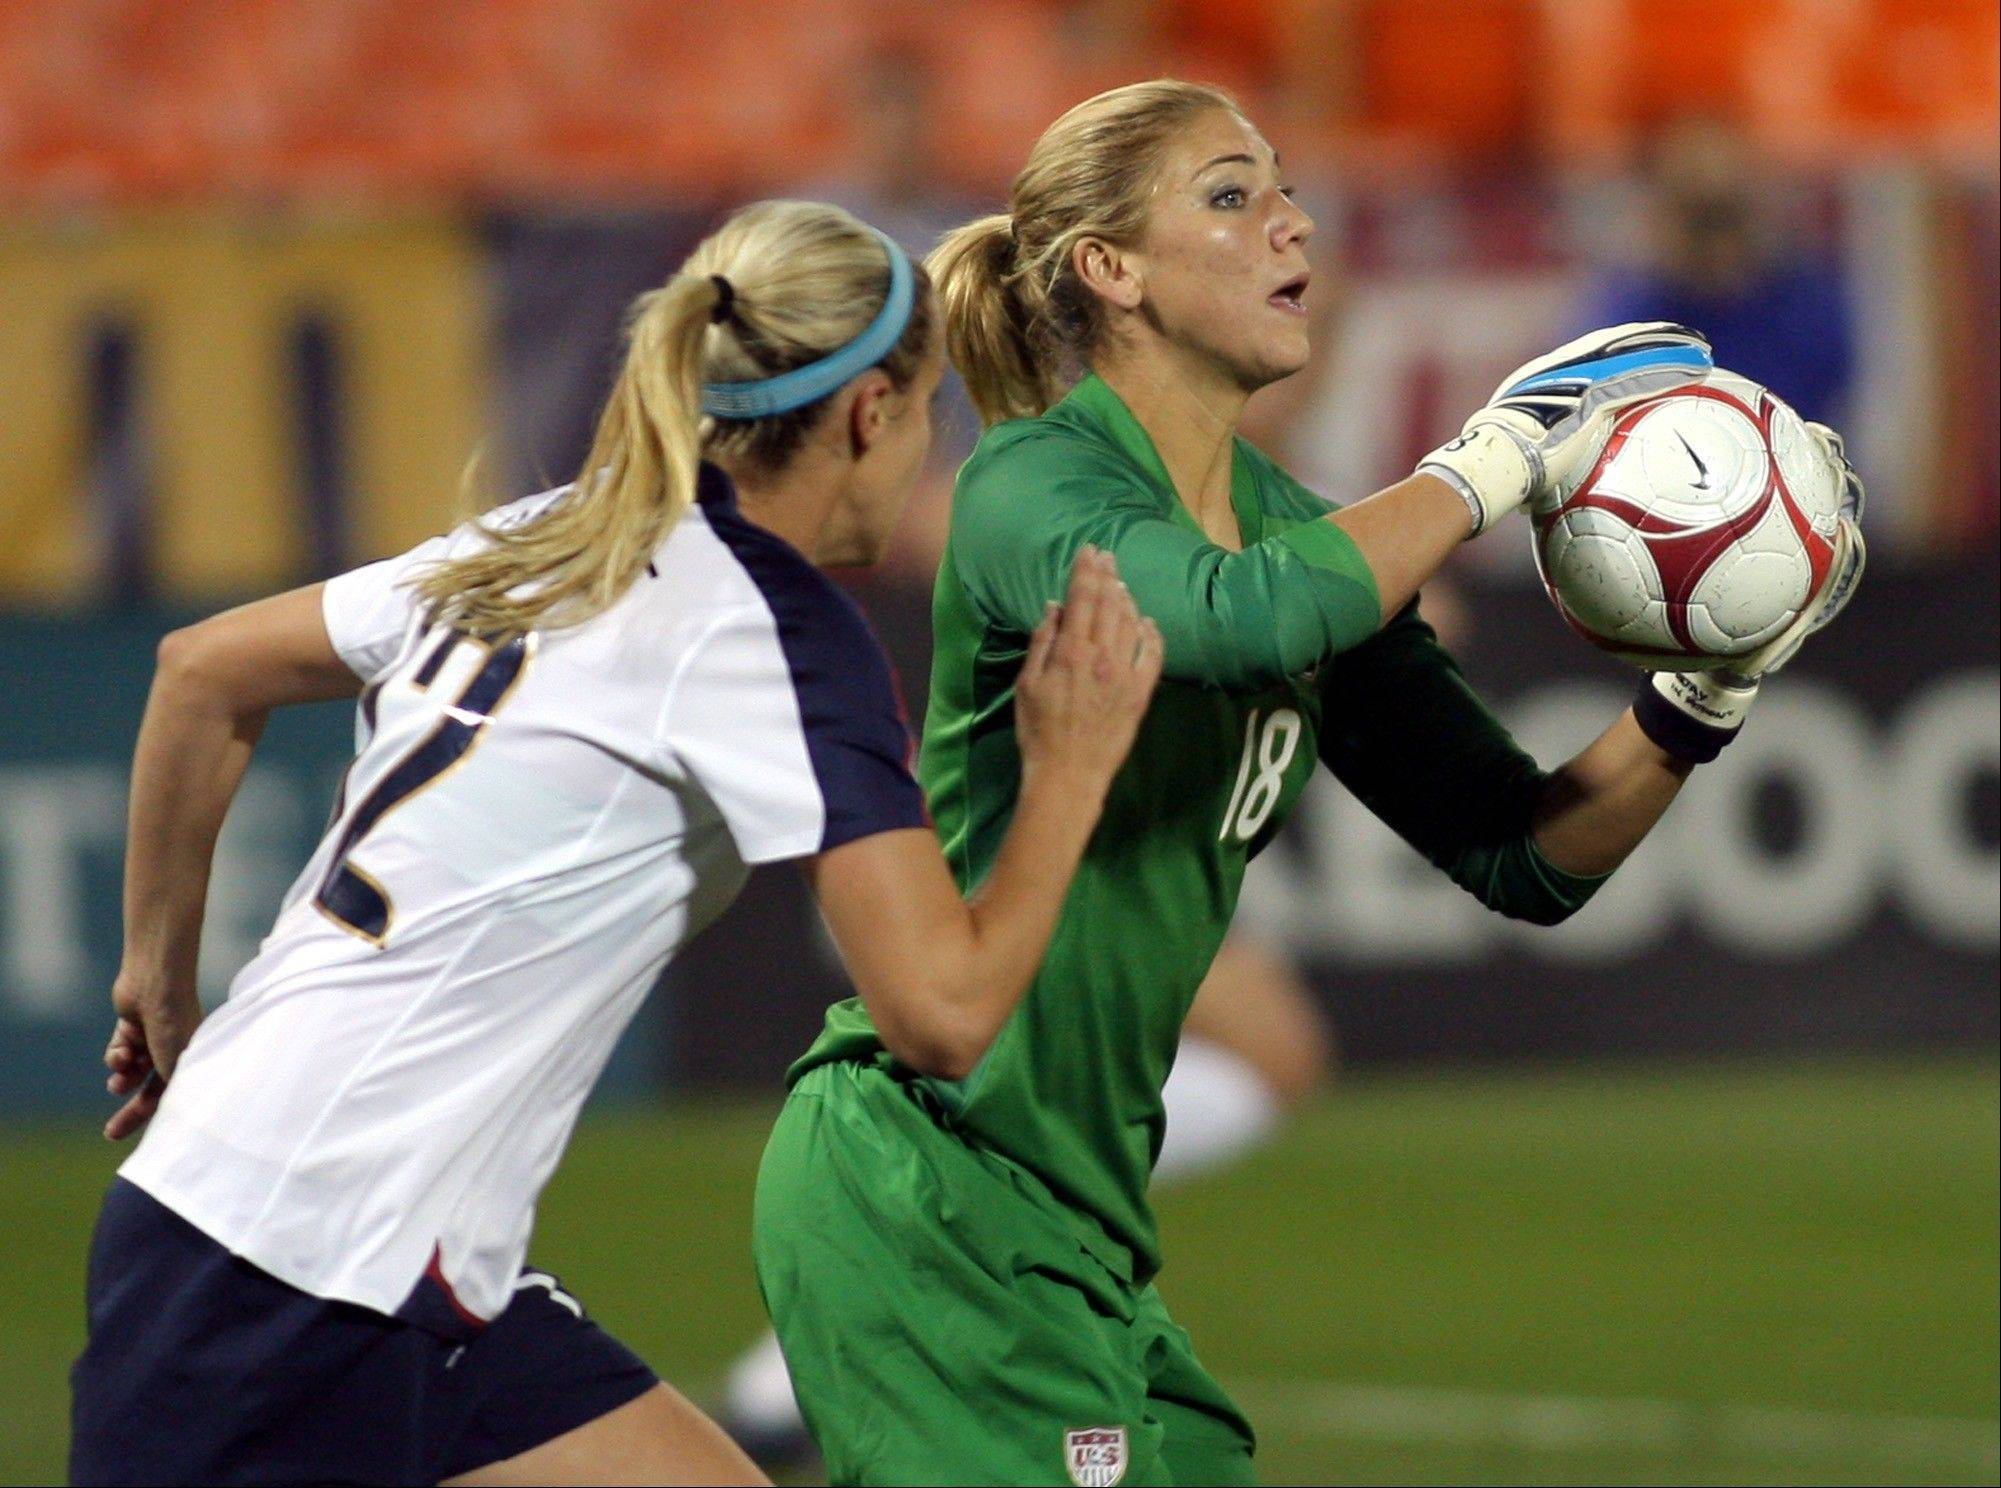 United States goalkeeper Hope Solo and Leslie Osborne, left, were teammates on the U.S. National Women's Team in 2008. Osborne has signed with the Chicago Red Stars for the 2013 NWSL season.